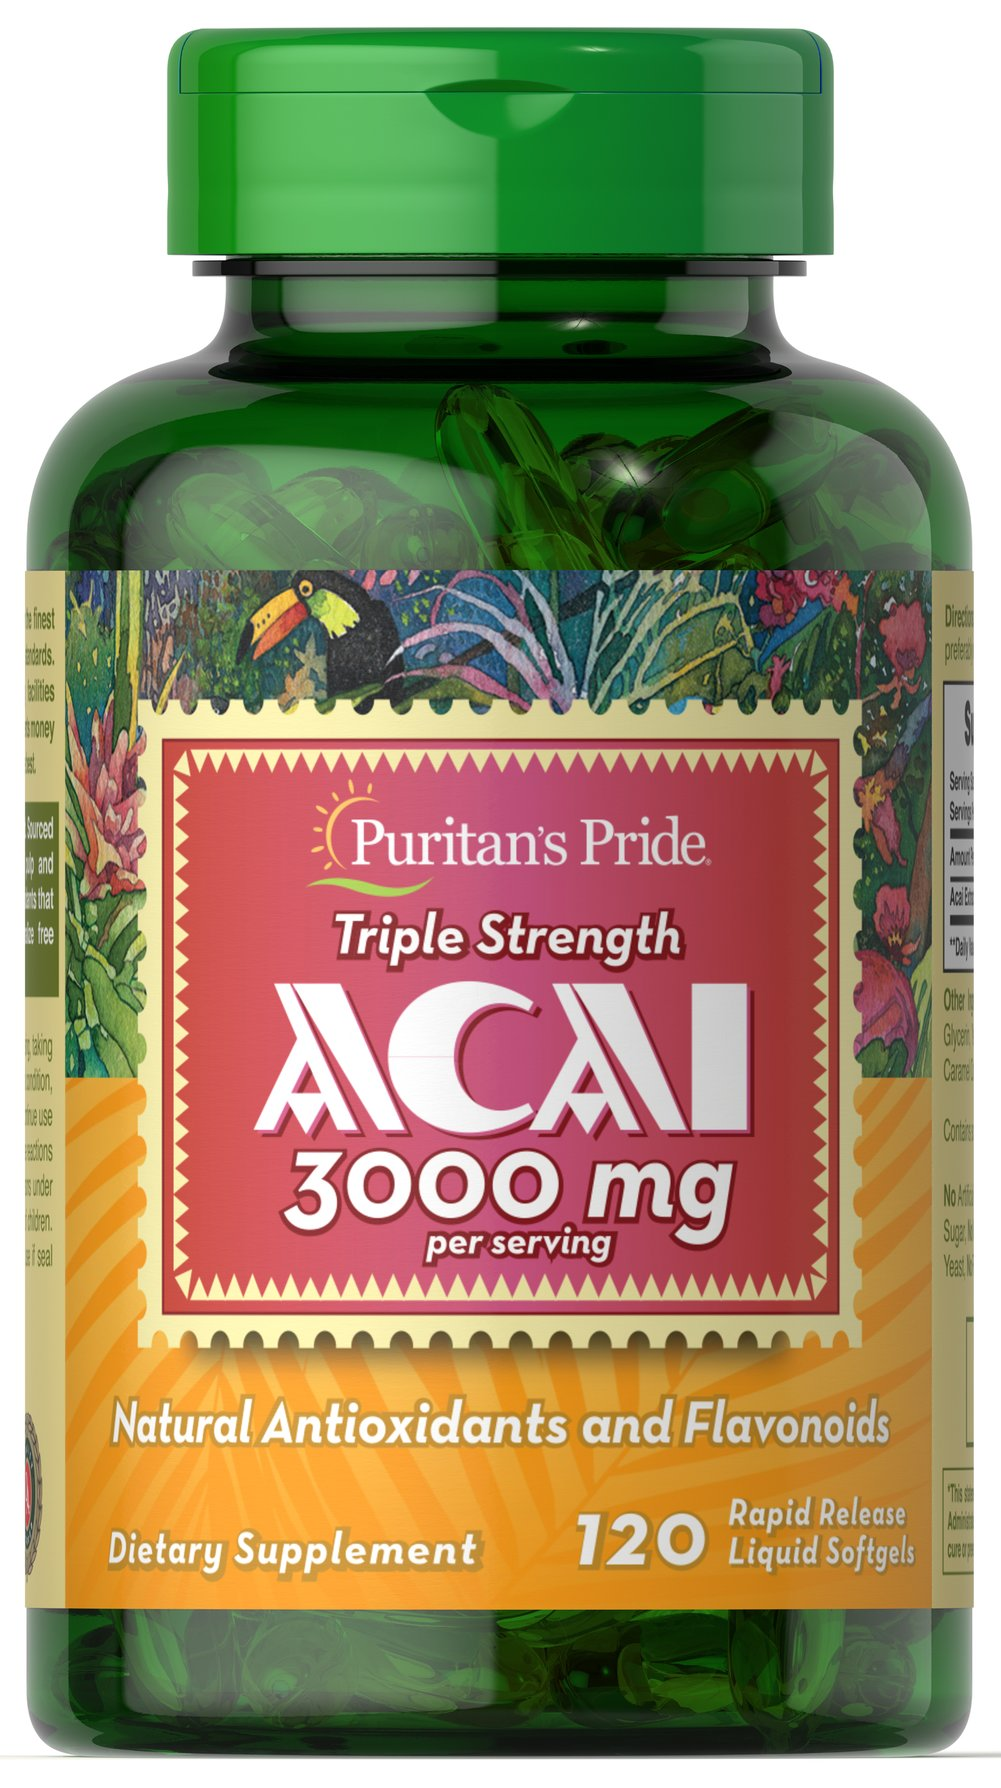 Triple Strength Acai 3000 mg <p>Unlock an exotic fountain of health and vitality with Acai!**</p><p>Contains natural flavonoids and antioxidants that help protect the body from cell damaging free radicals**</p><p>Antioxidants are an important line of defense against these rogue atoms and also help support and maintain immune system health**</p><p>3,000 mg Acai per serving (two softgels).</p> 120 Softgels 3000 mg $27.79